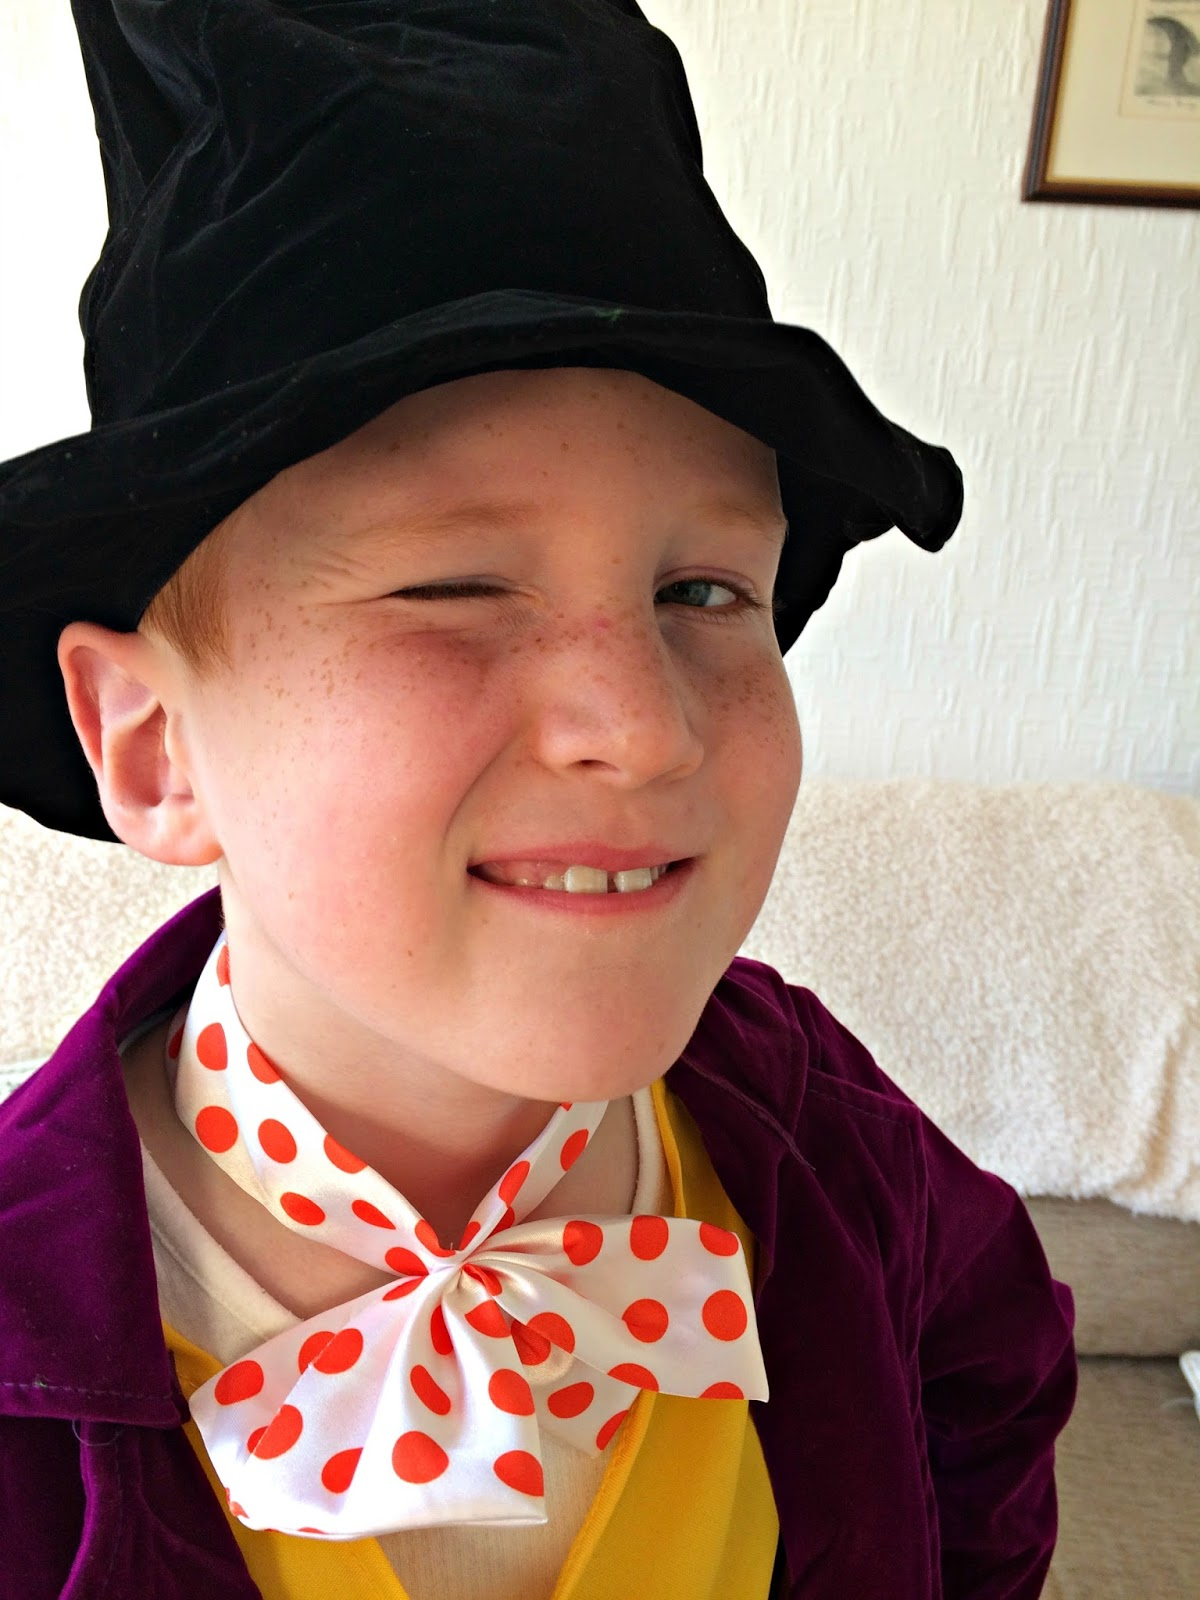 Ieuan dressed as Willy Wonka